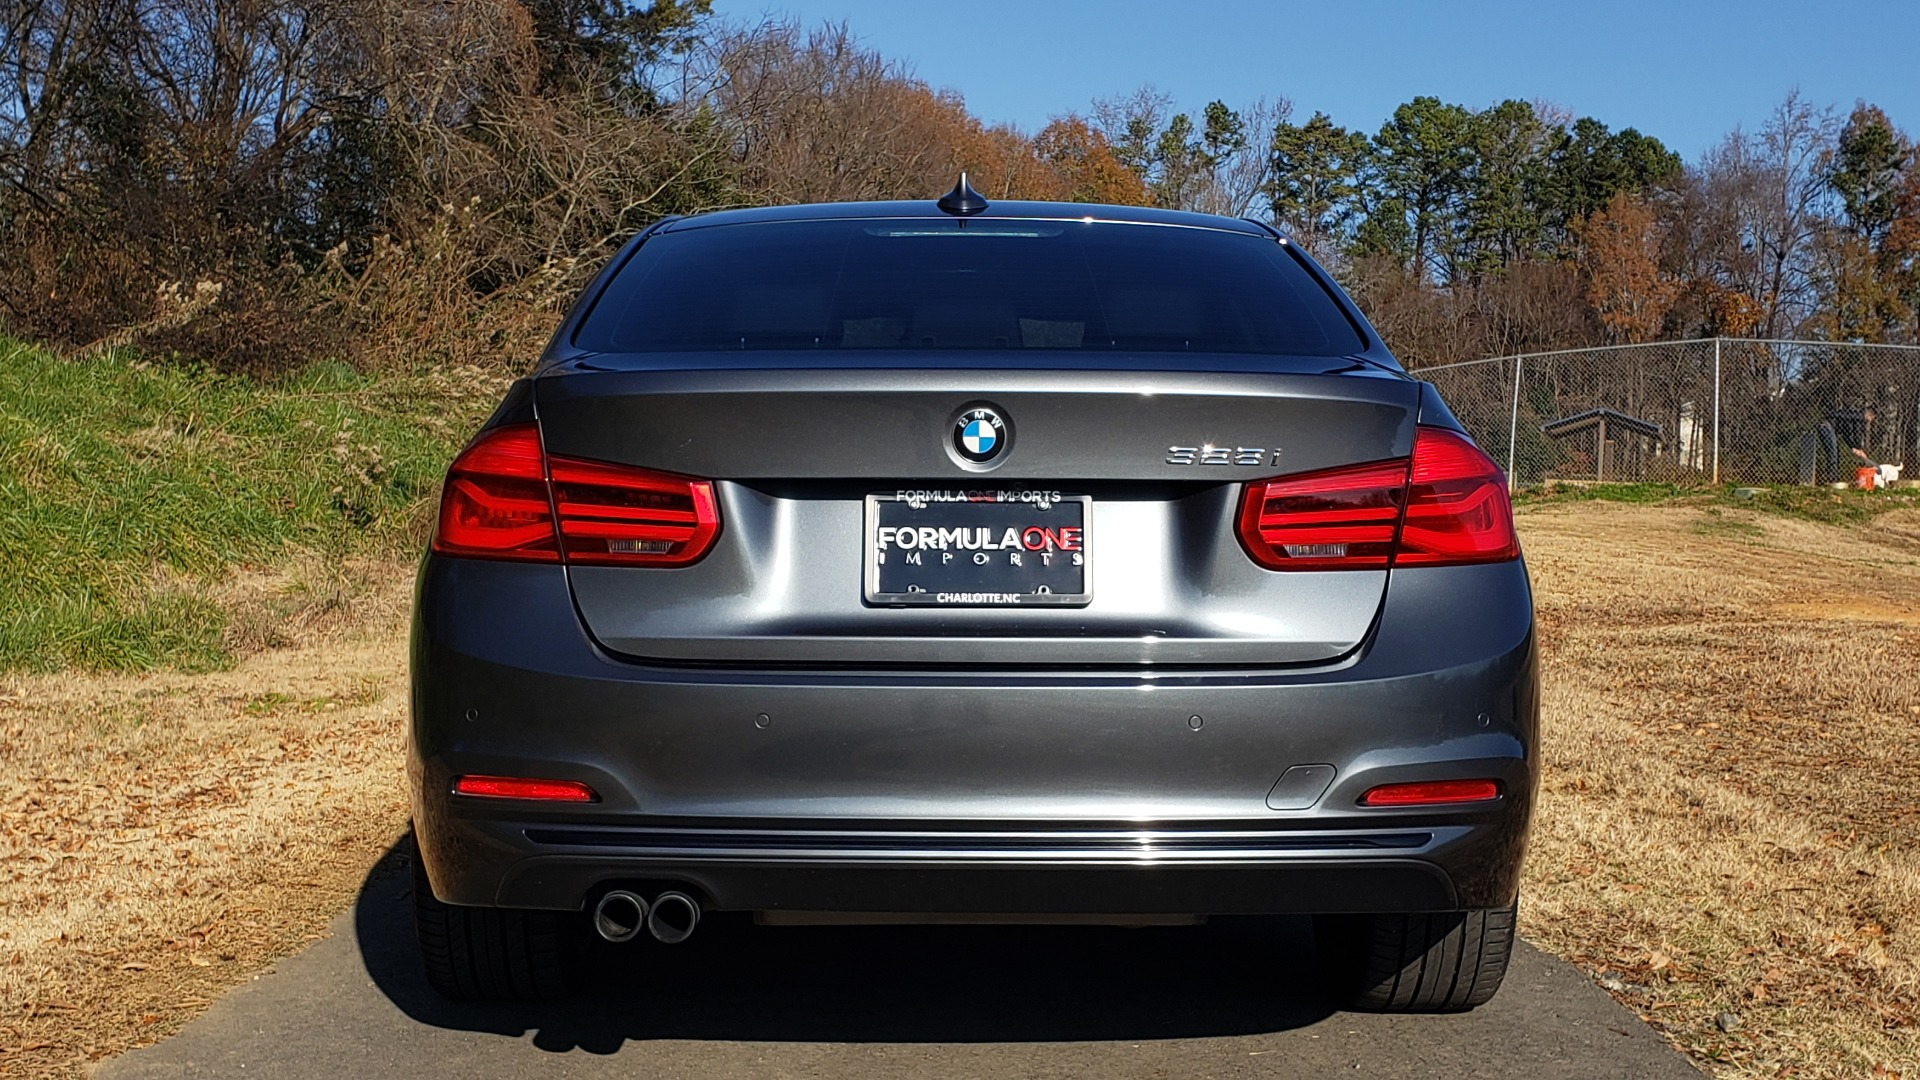 Used 2016 BMW 3 SERIES 328I / DRVR ASST / SUNROOF / PARK DIST CNTRL / REARVIEW for sale Sold at Formula Imports in Charlotte NC 28227 17